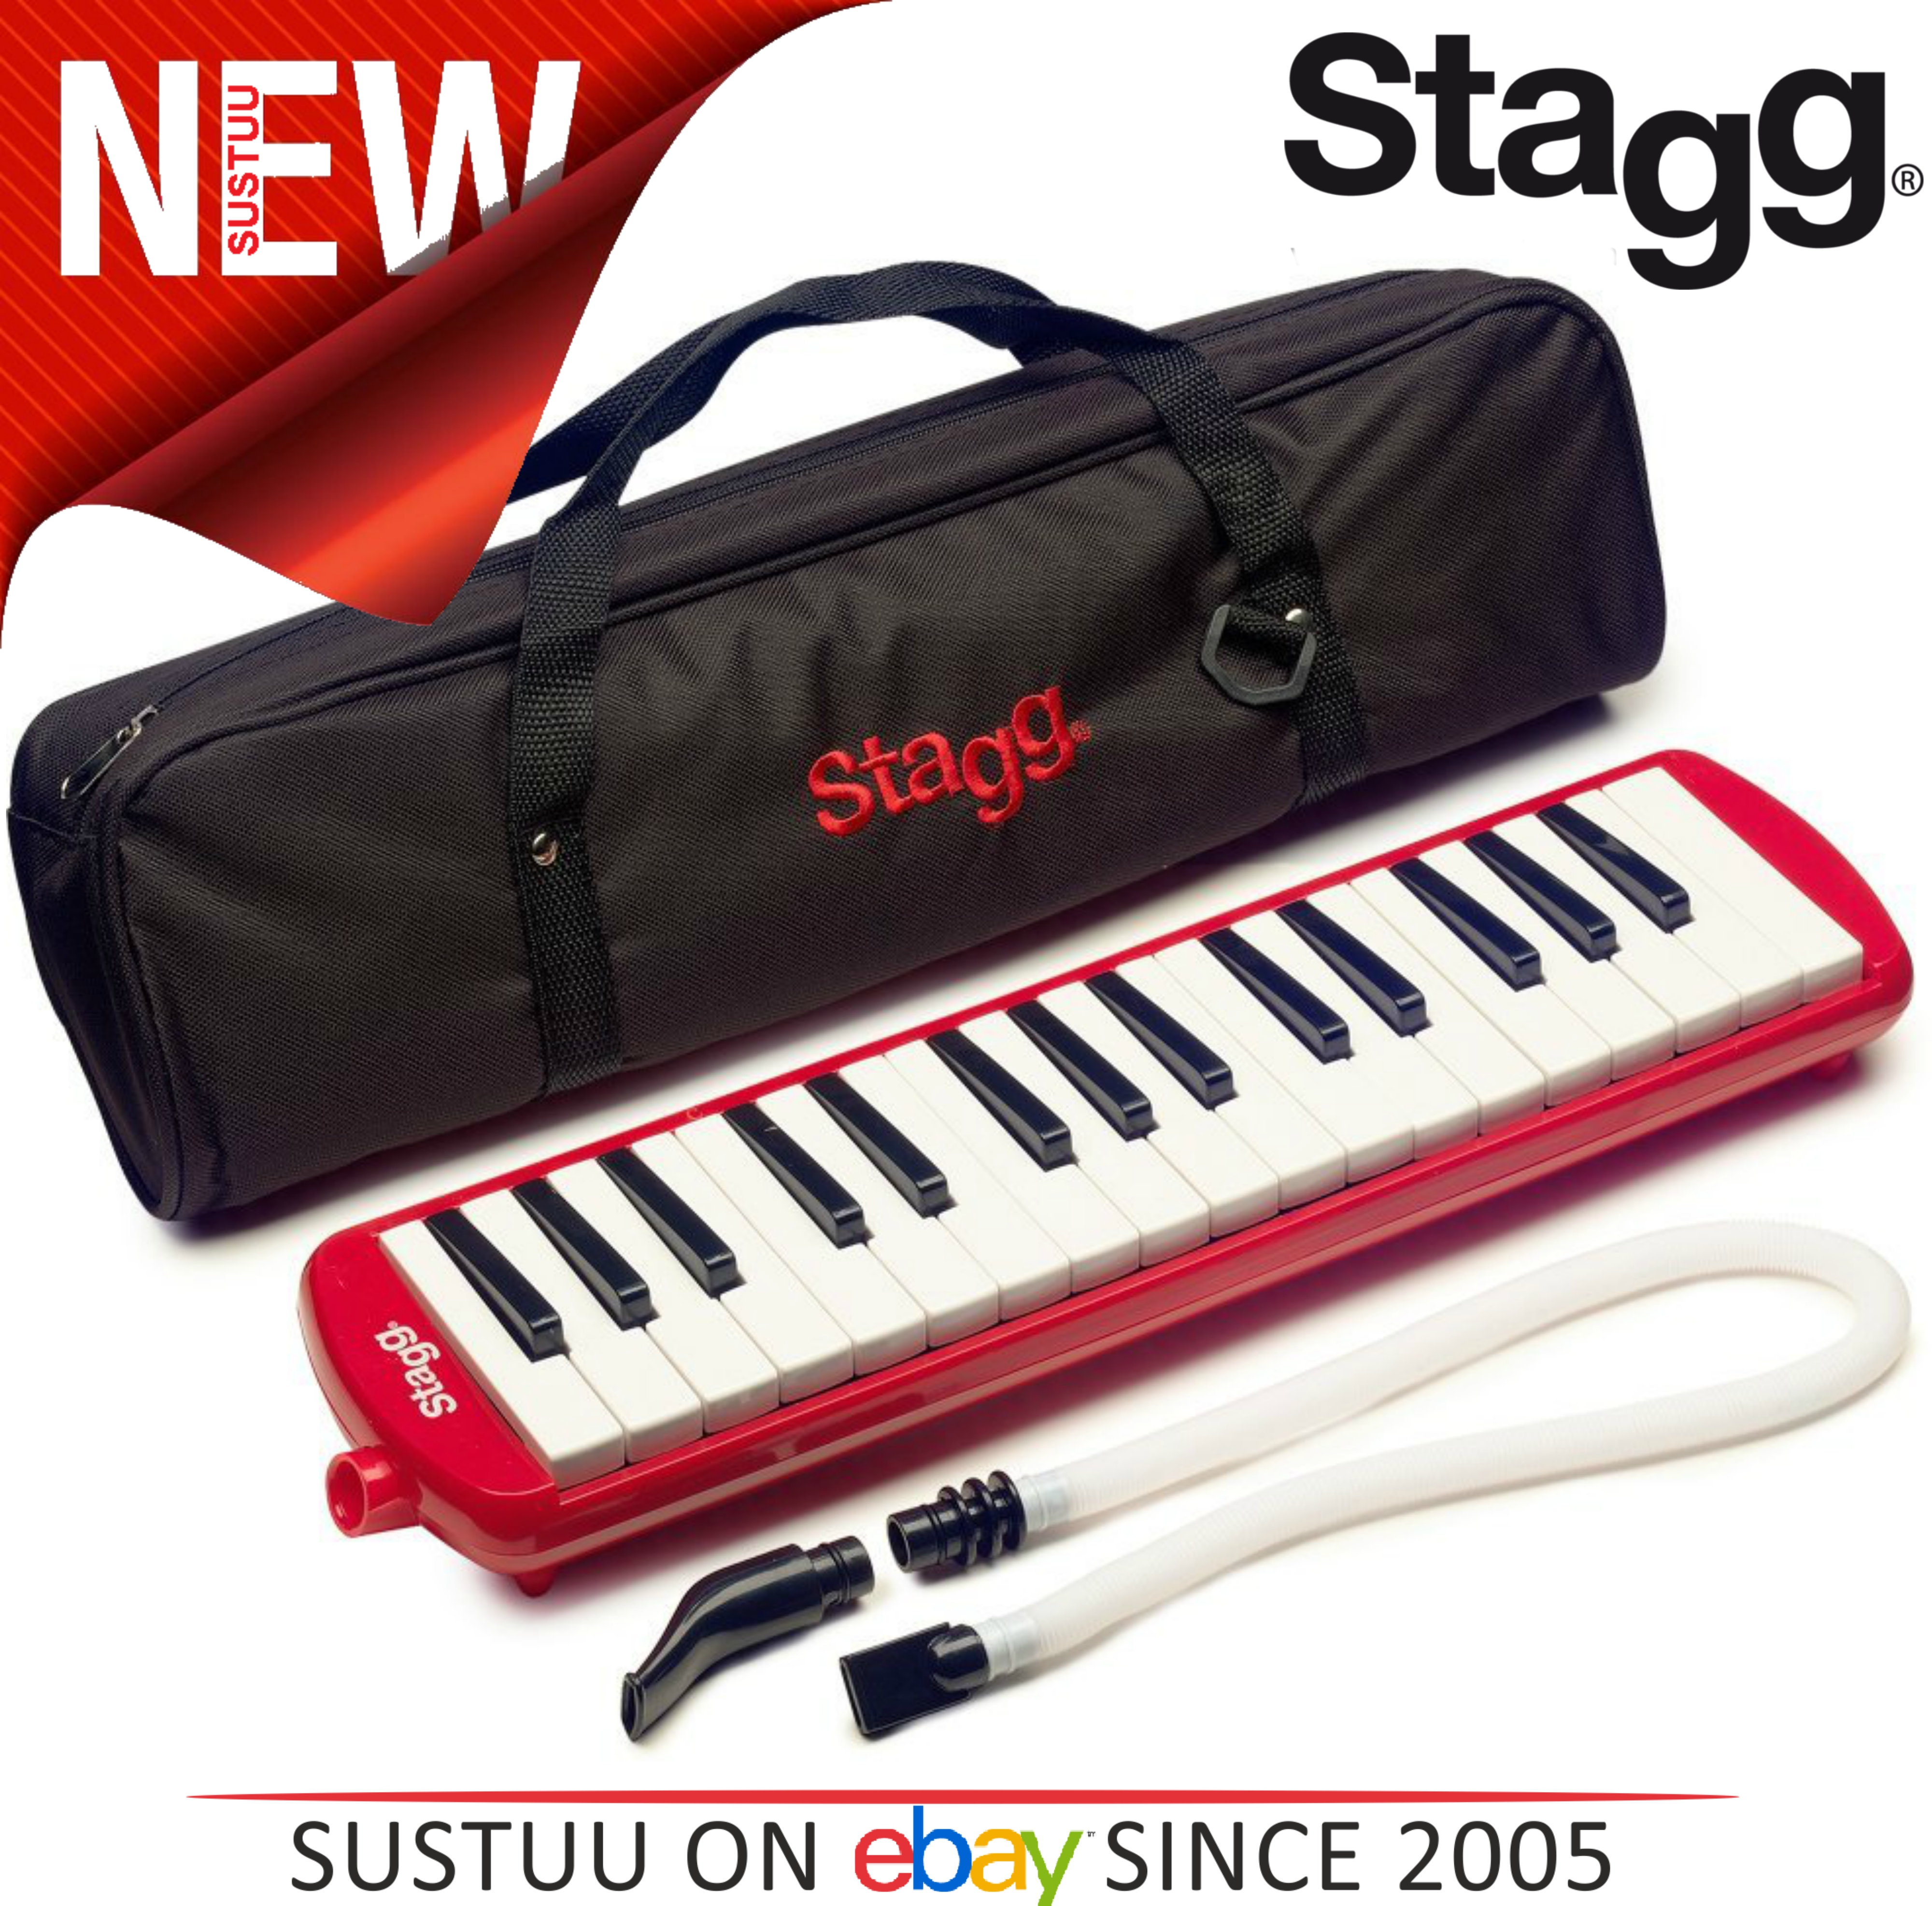 Stagg Melodica Red Music Reed 32 Keys Mouthpiece Piano Keyboard  - MELOSTA32RD